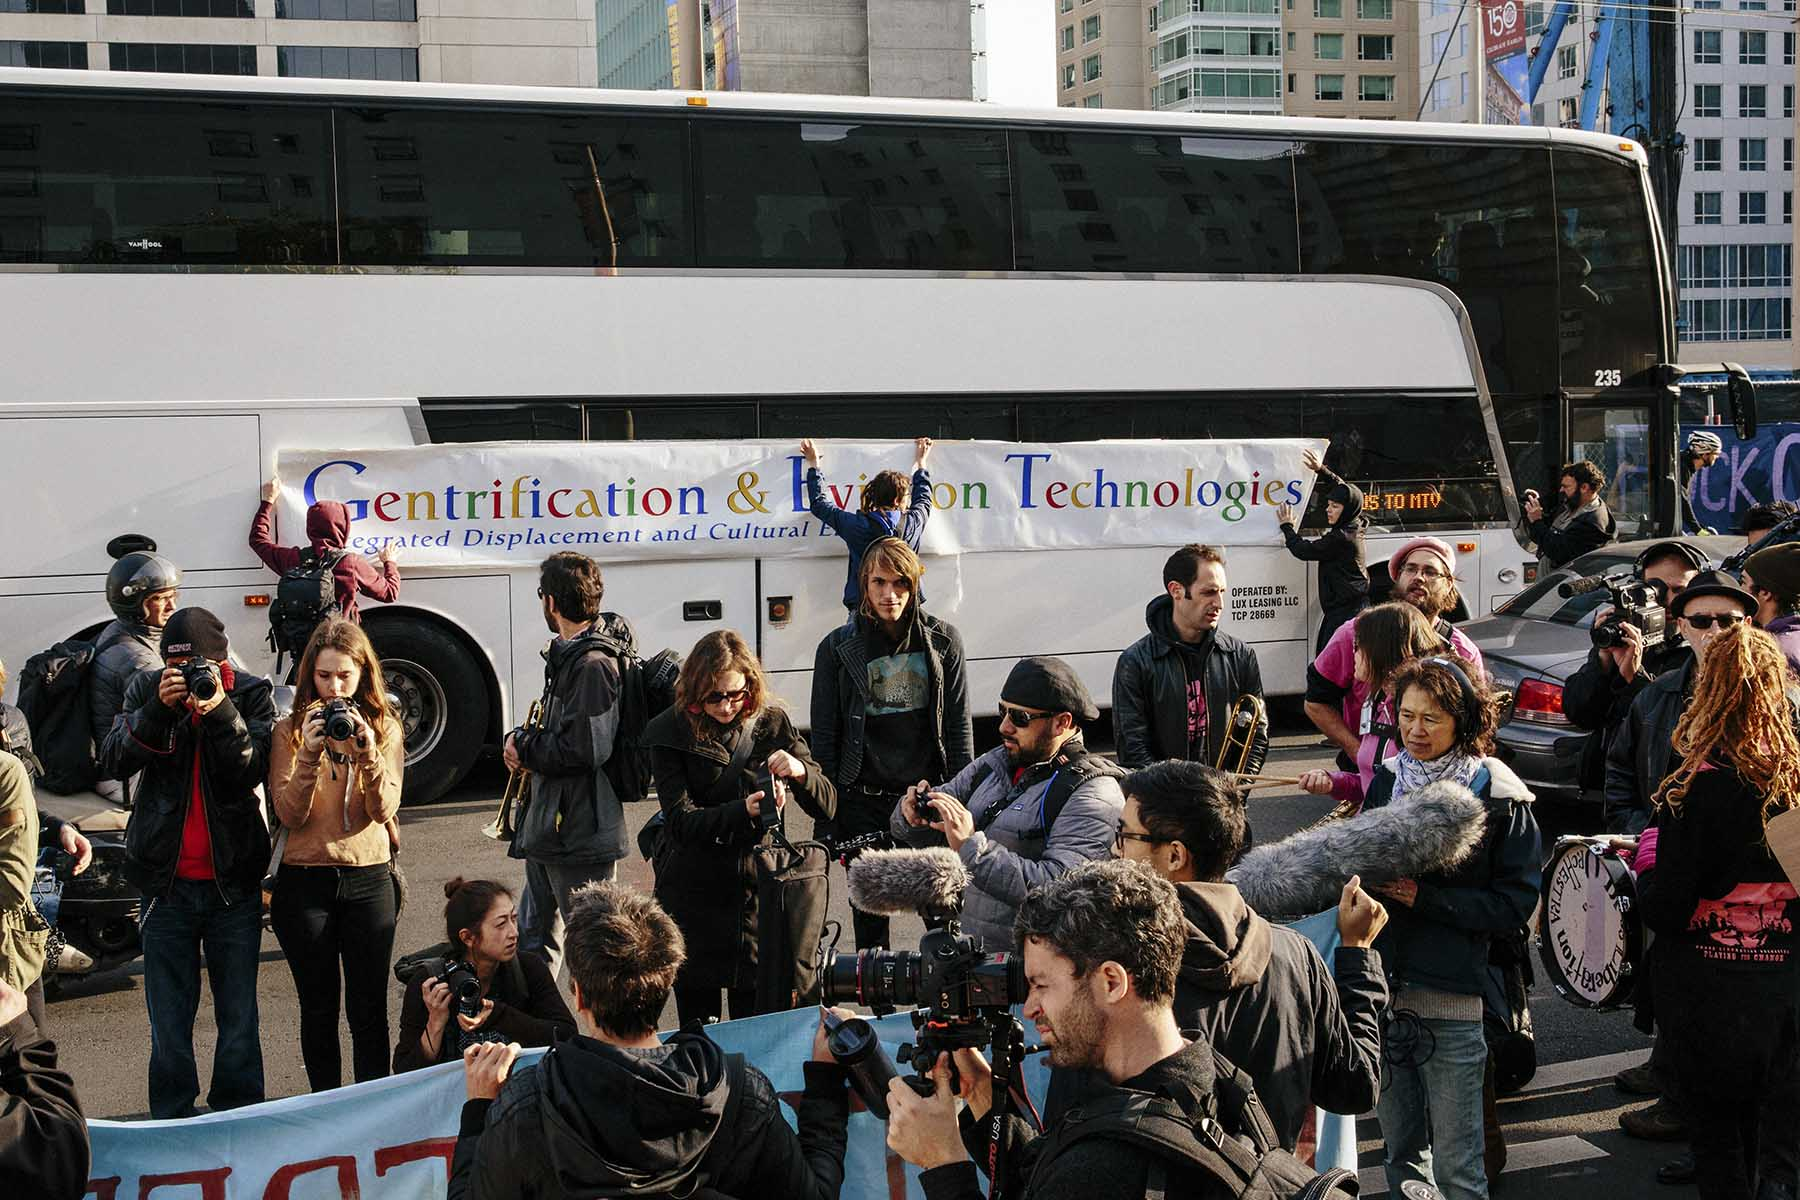 Protesters who blame tech wealth for San Francisco's soaring housing costs blockade a private shuttle filled with Google employees.